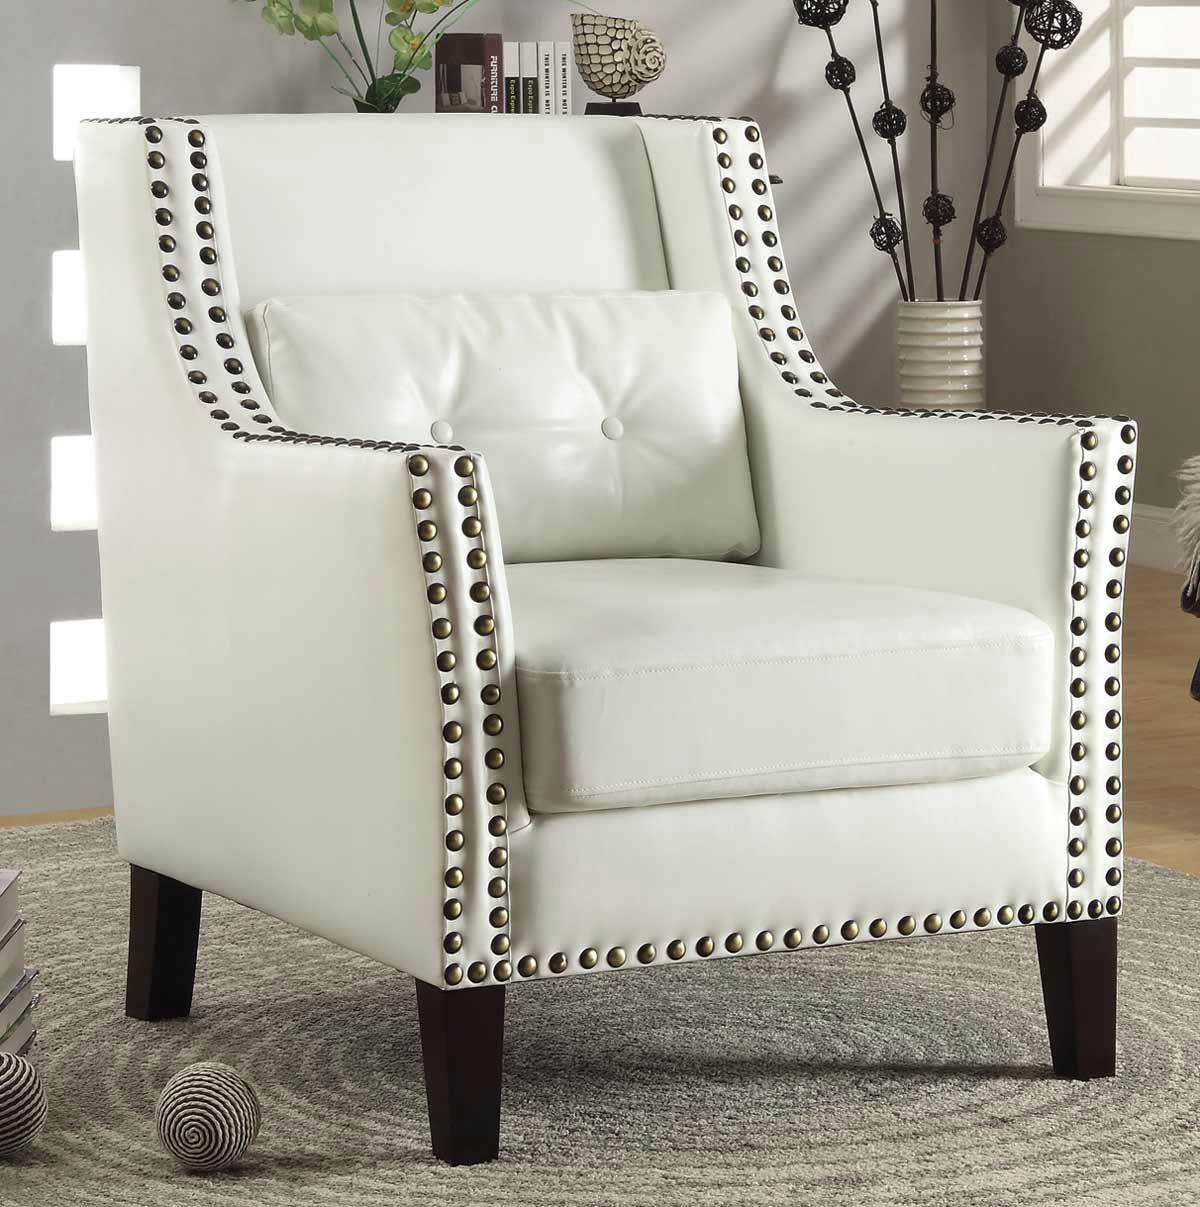 Coaster 902225 Accent Chair - White